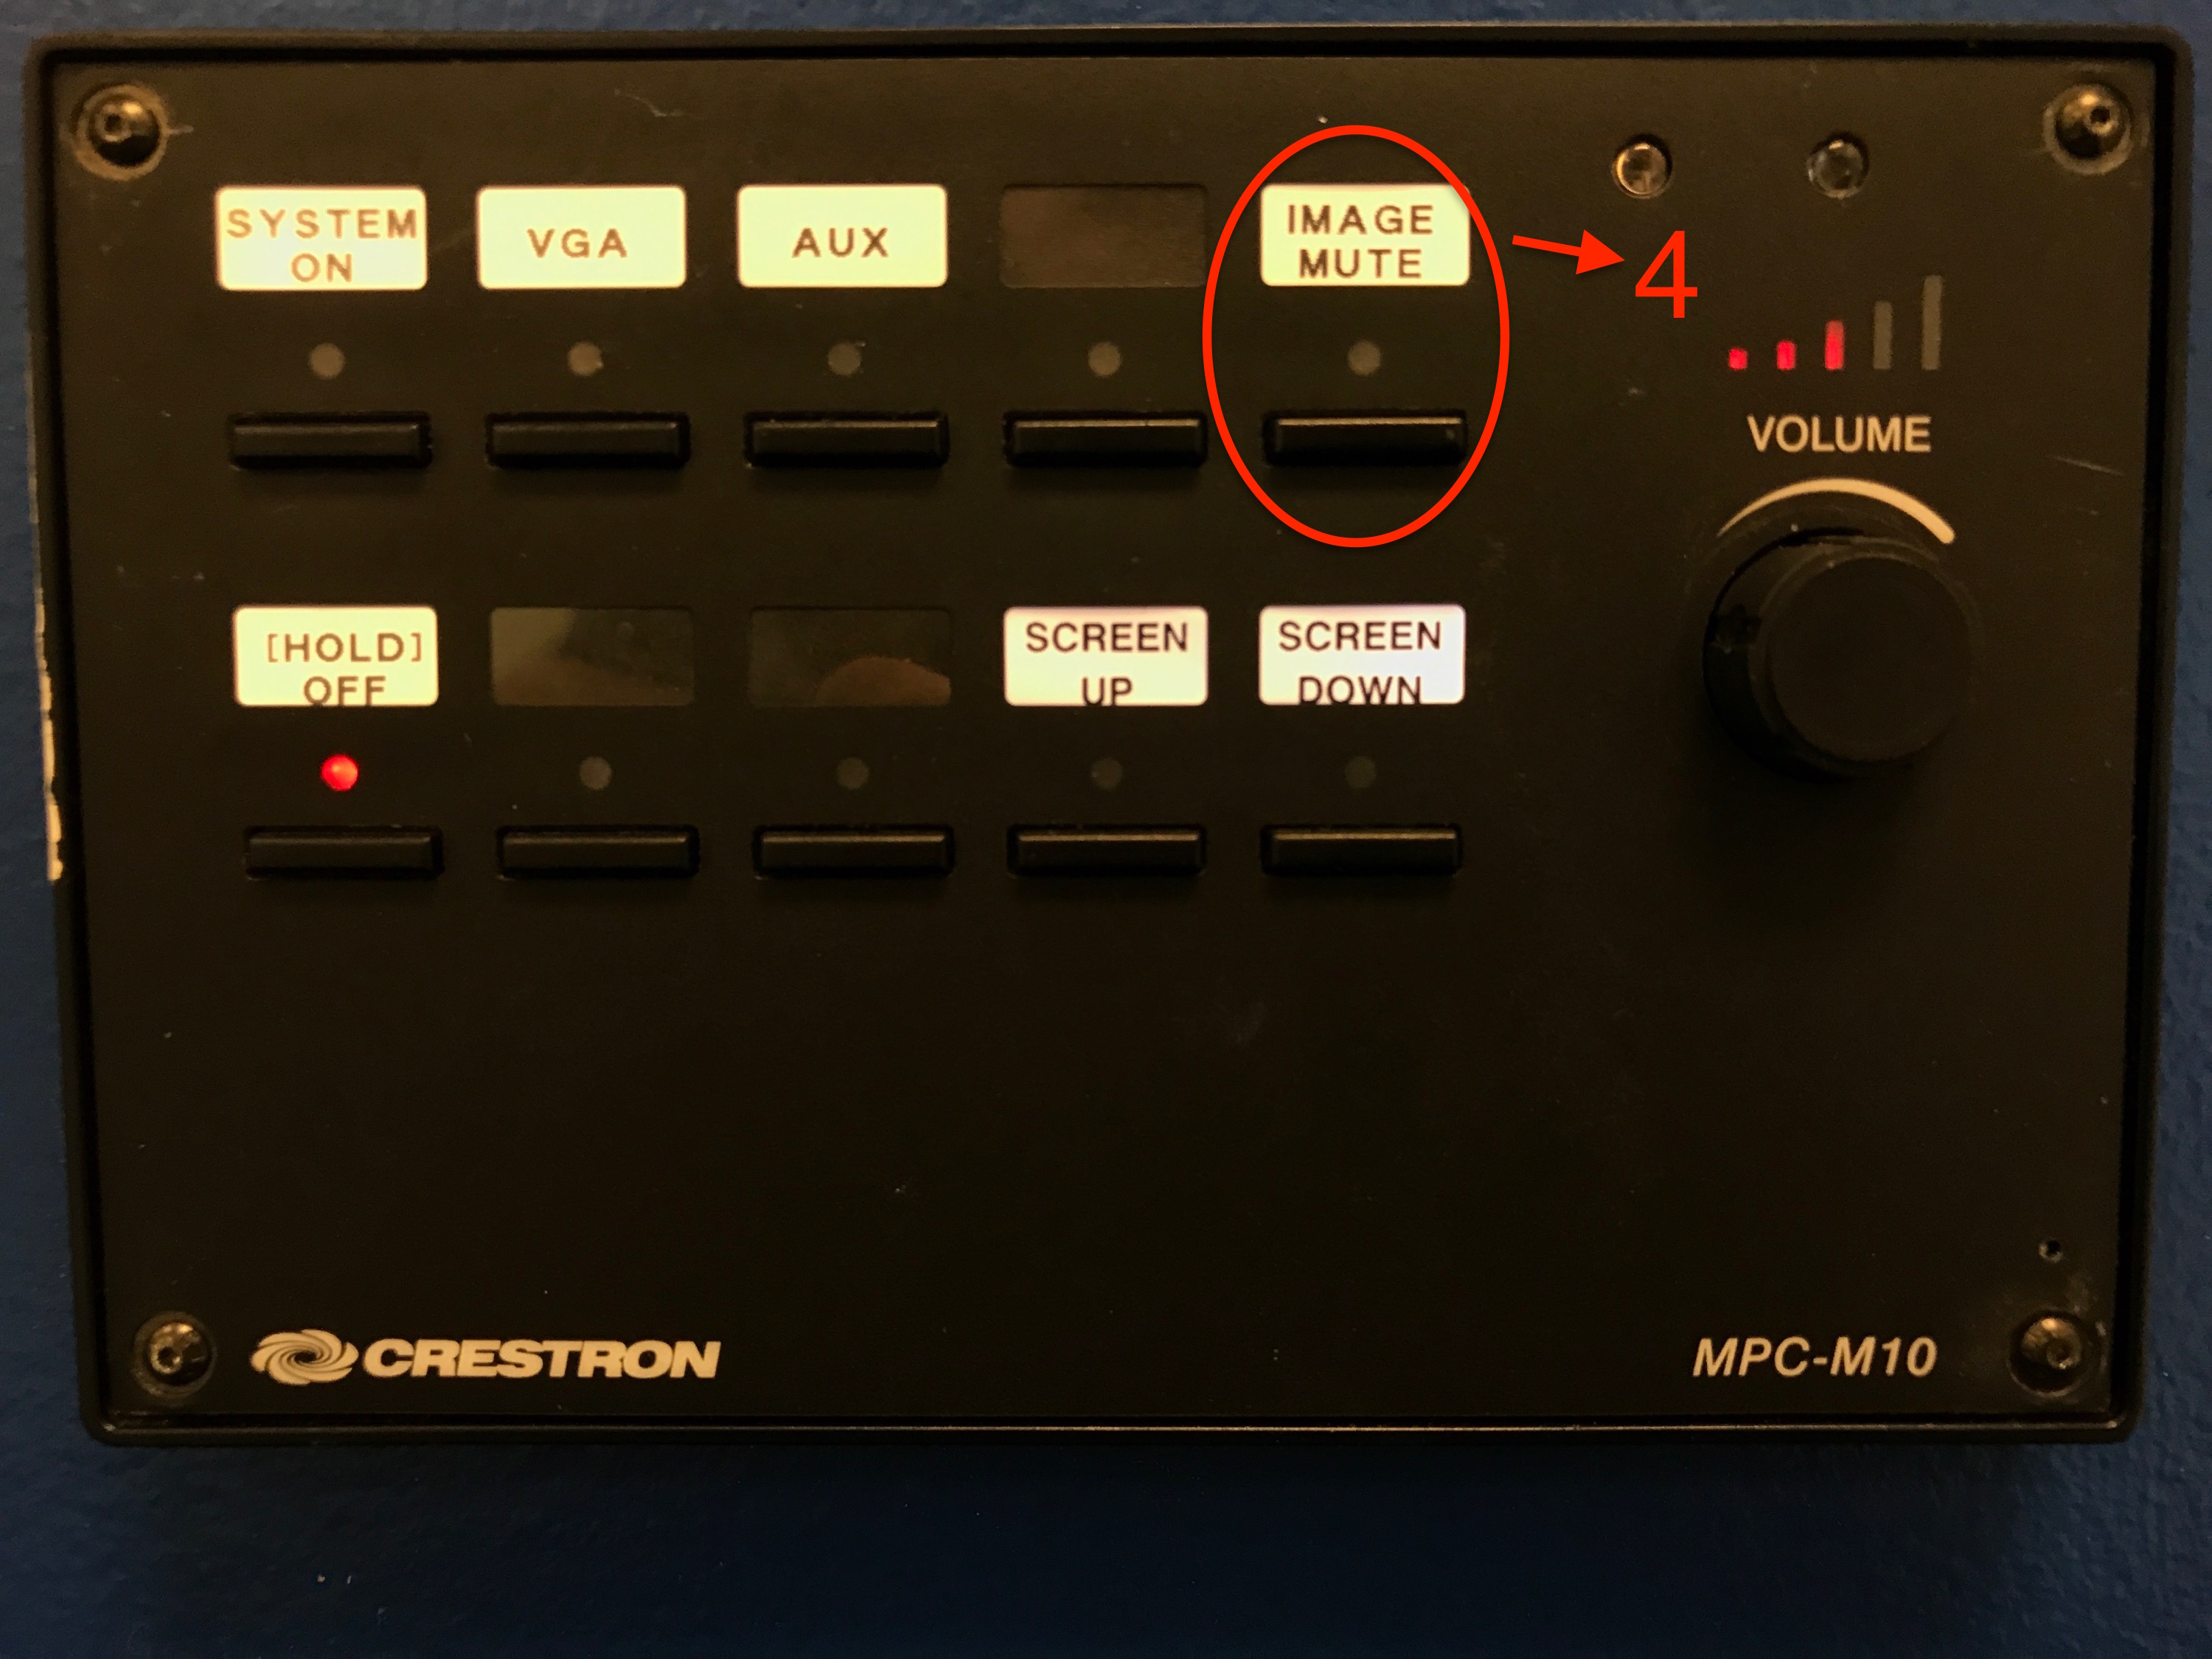 A photo of the 'image mute' button on the control panel.